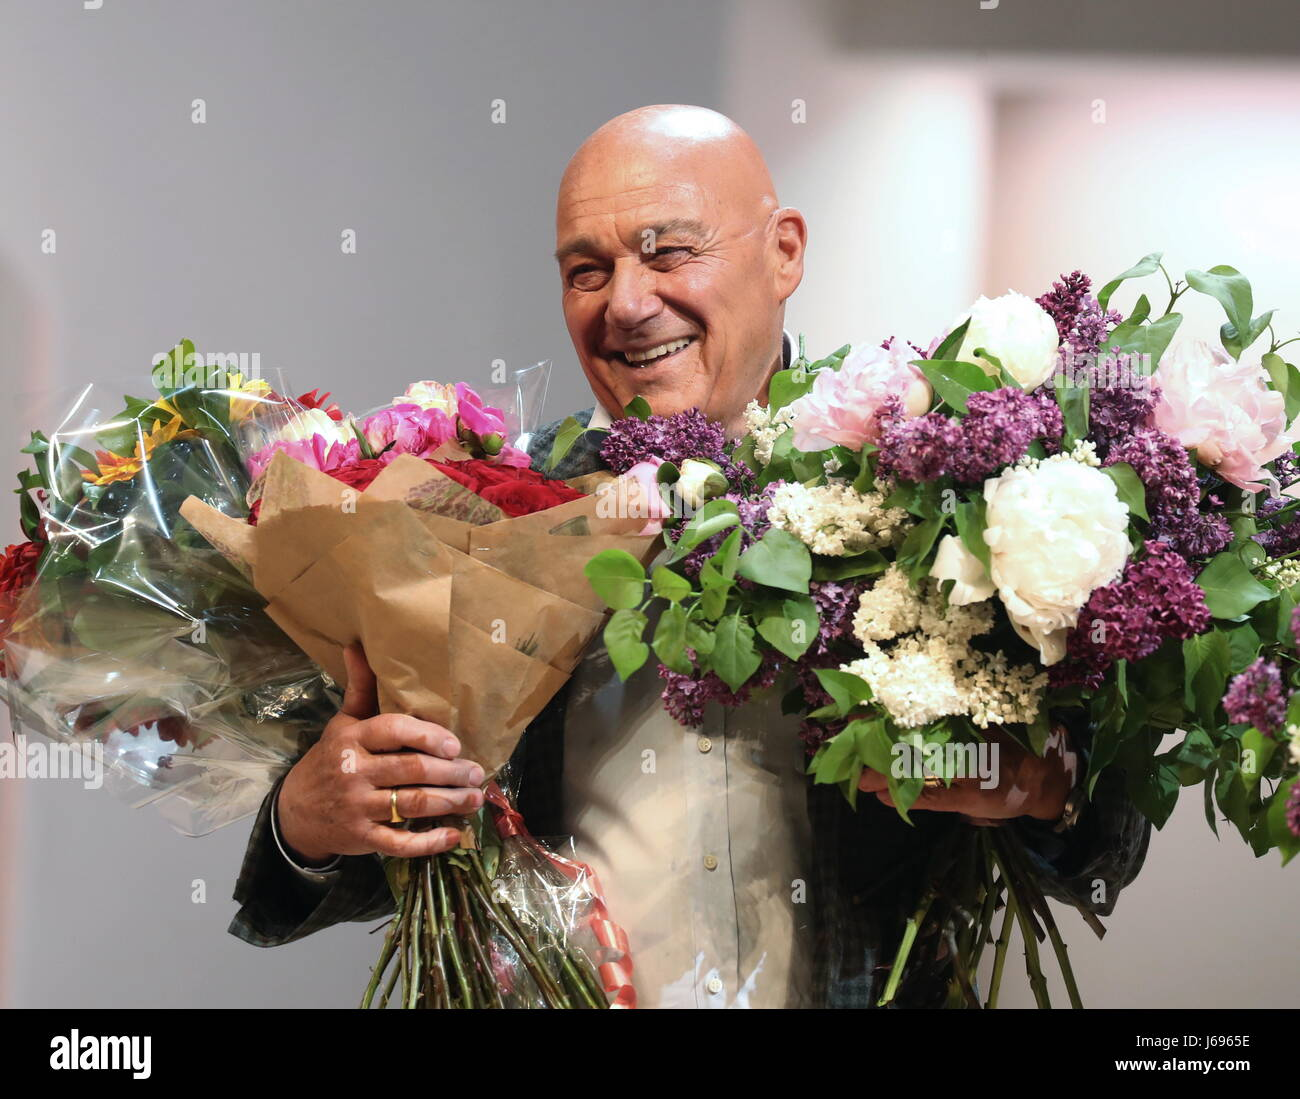 Moscow, Russia. 19th May, 2017. TV presenter Vladimir Pozner as Narrator acknowledges the audience after a play - Stock Image